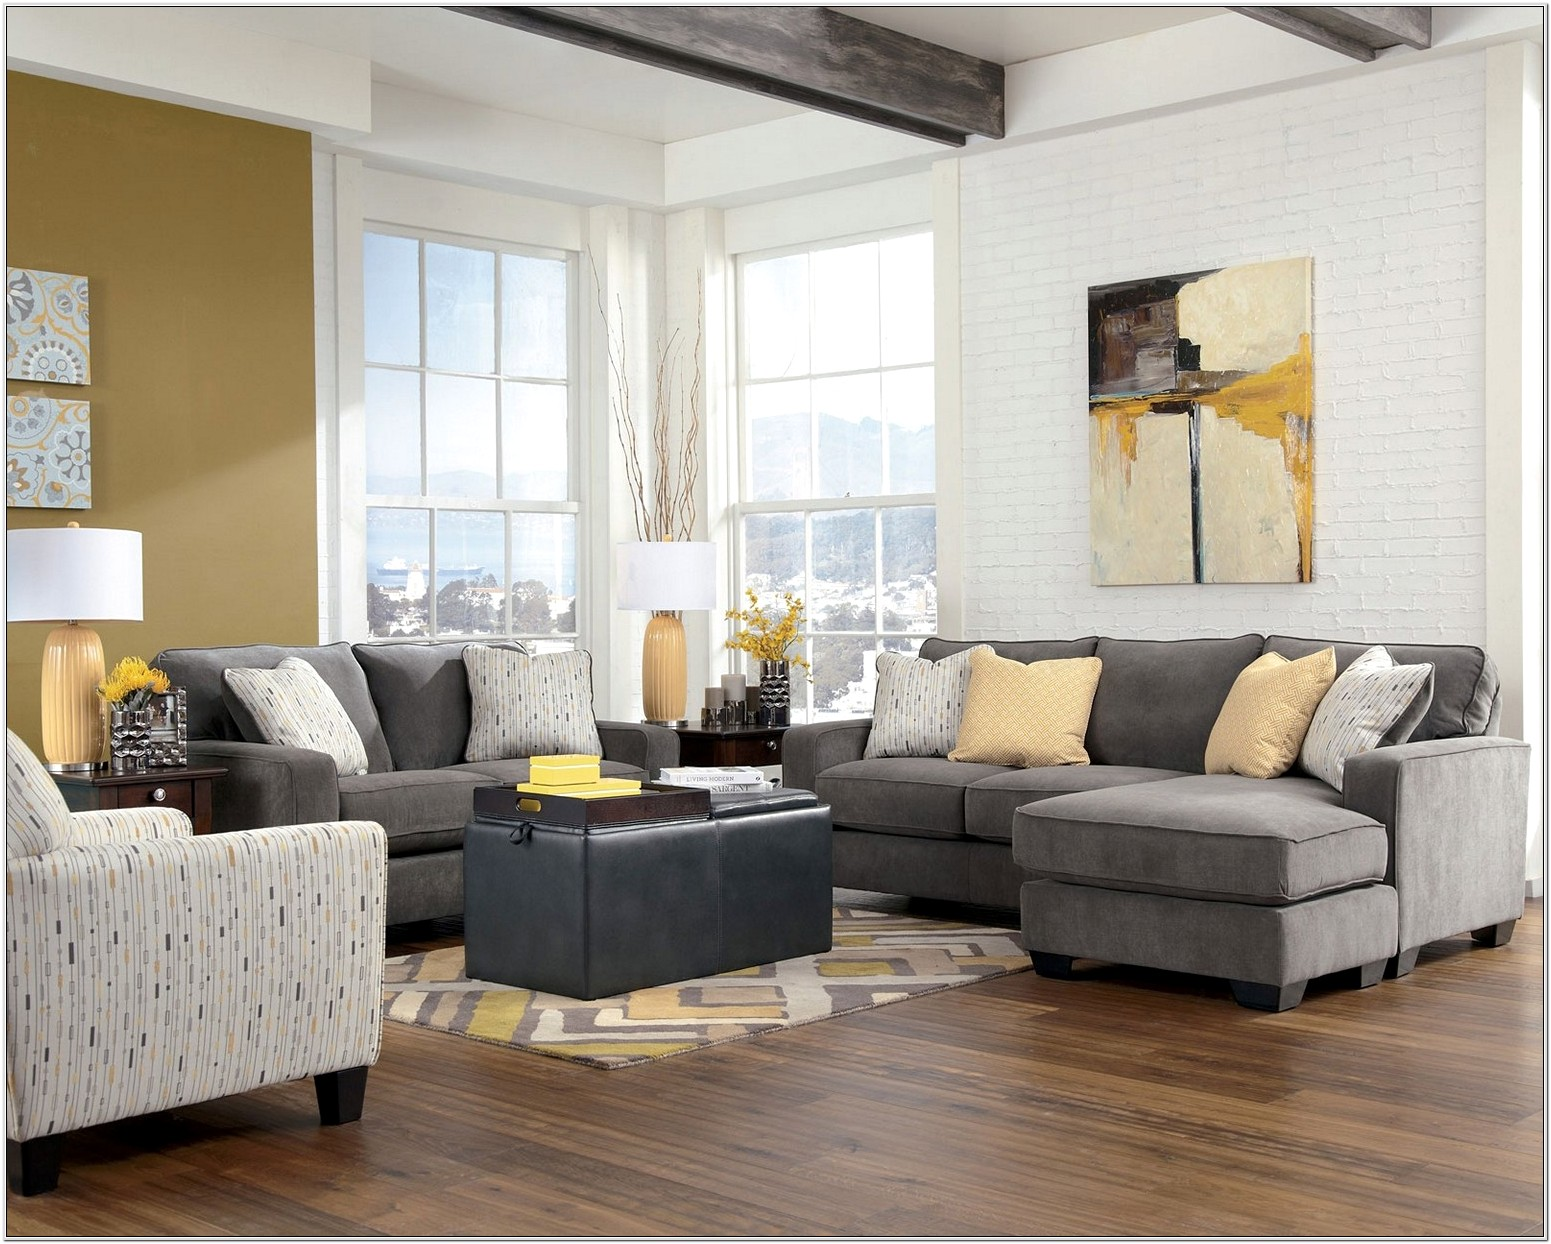 Exquisite Design Dark Gray Couch Living Room Ways To Decorate Grey